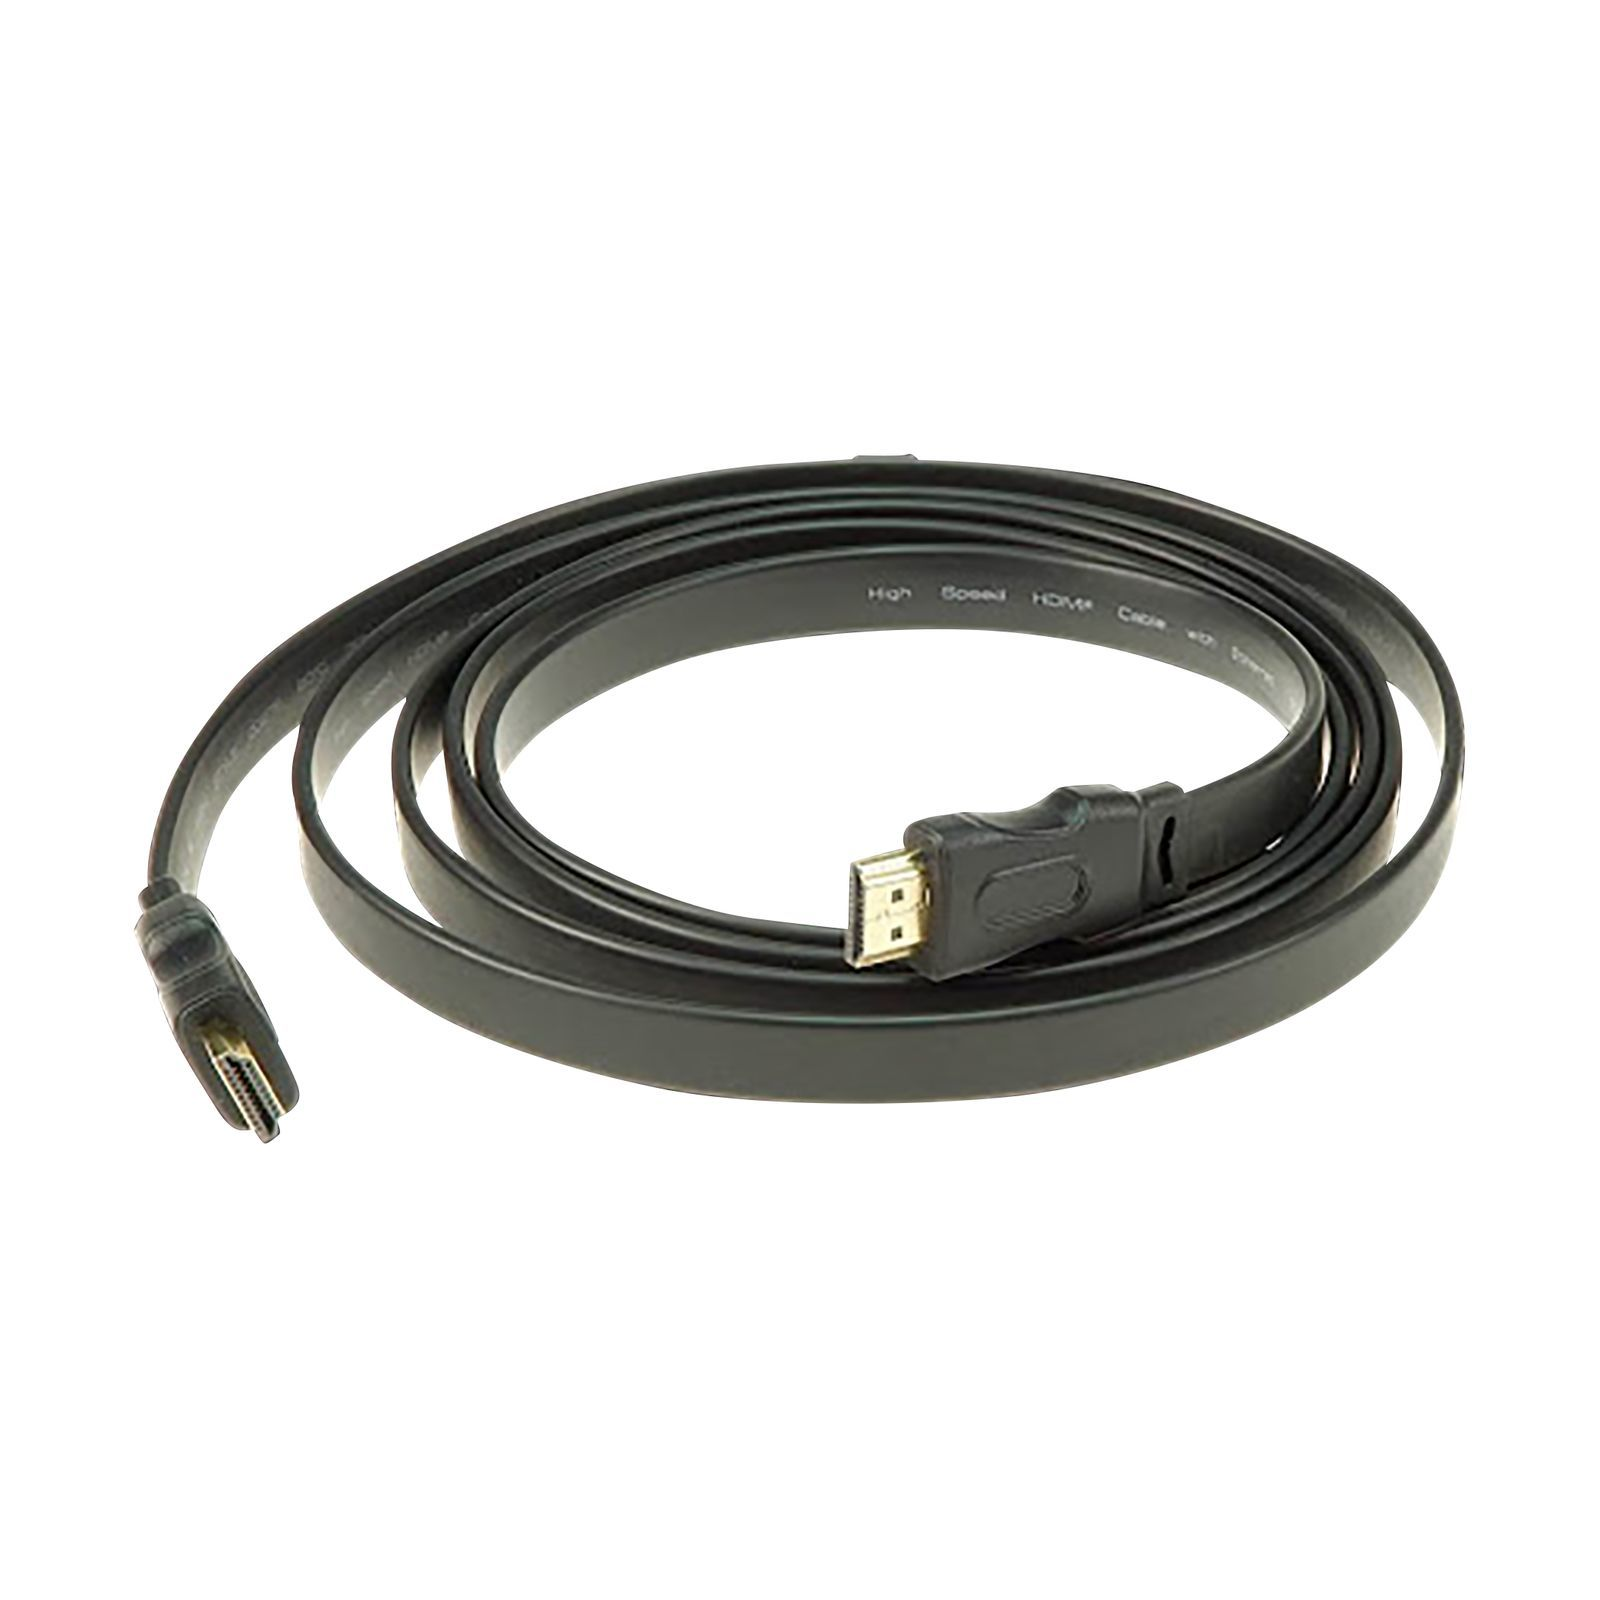 Klotz HDMI 1.4a High Speed A-A, 2 Meter, Flachkabel Produktbillede